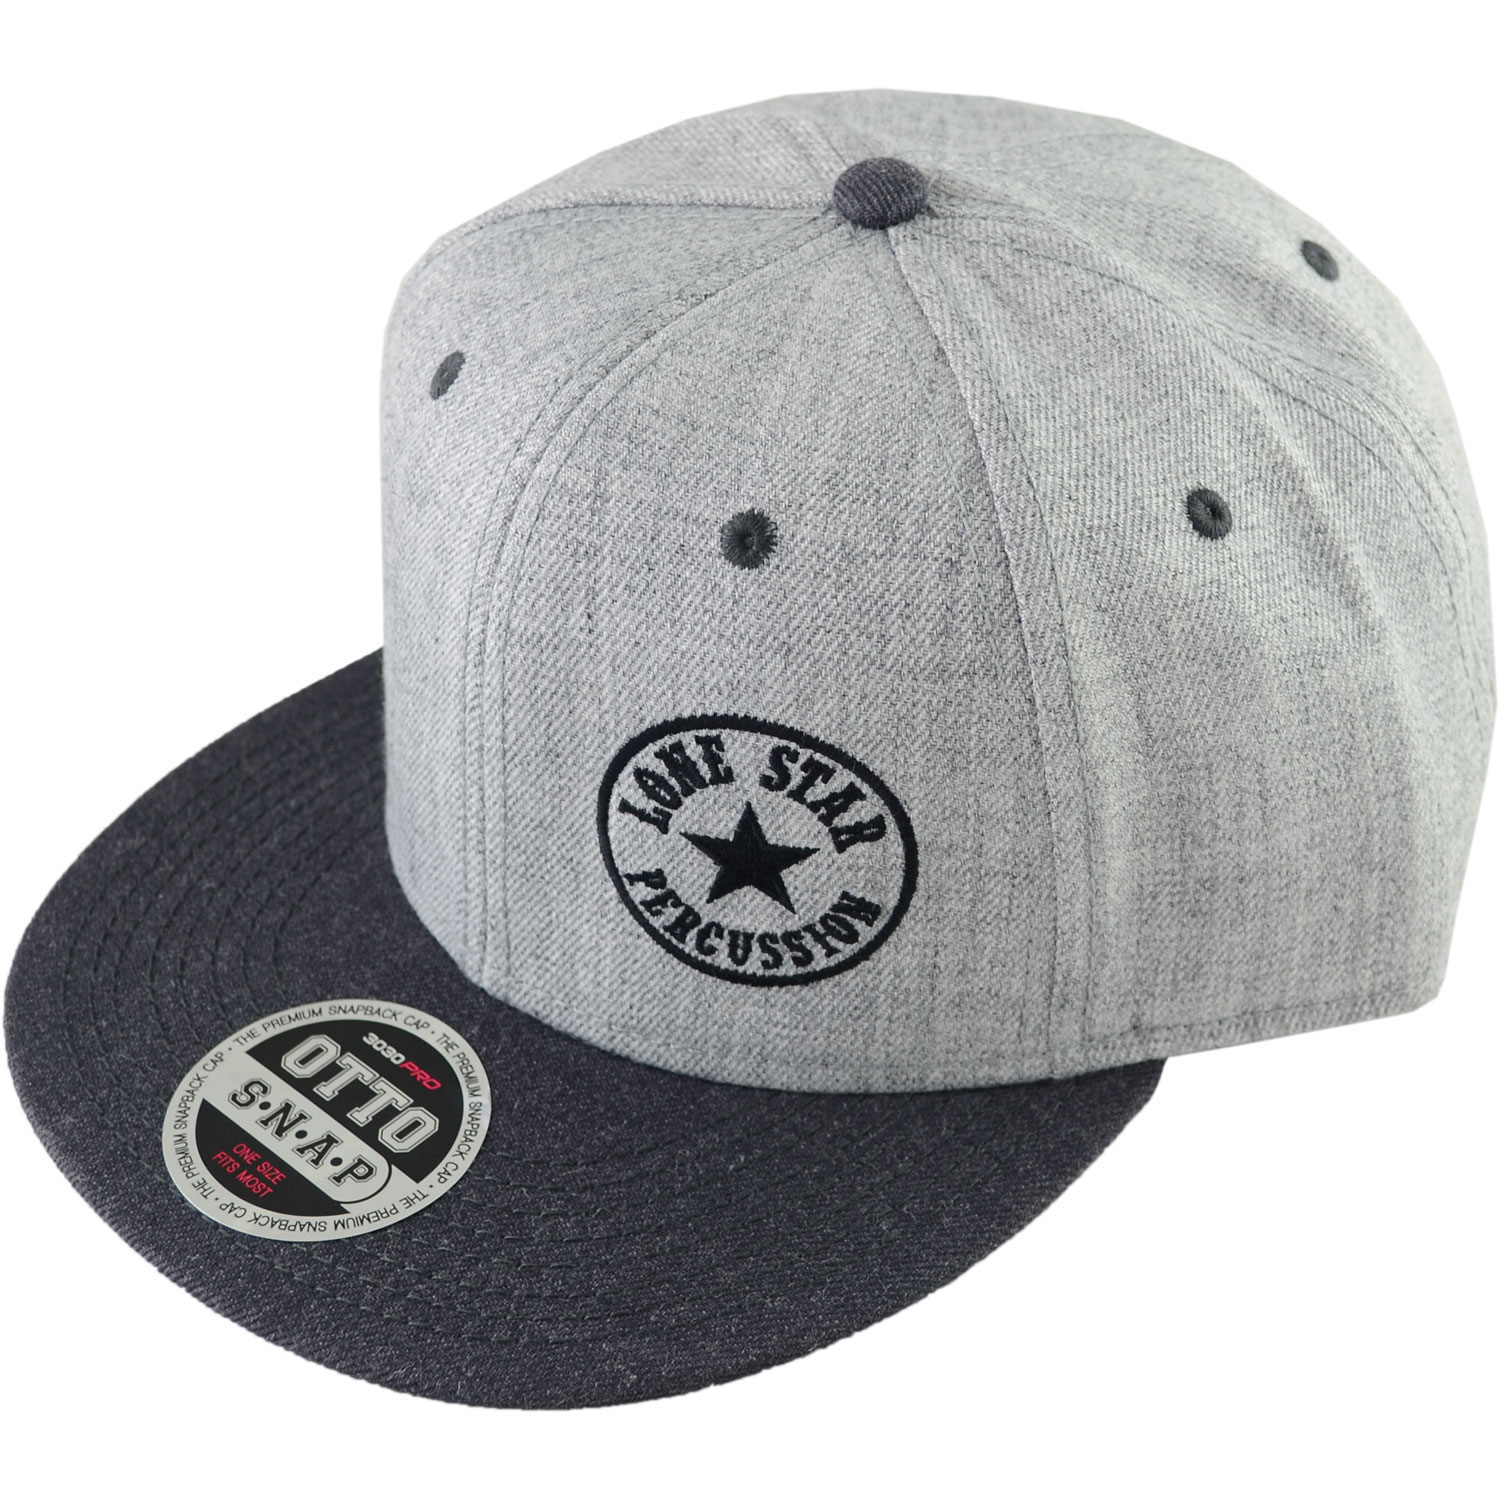 Lone Star Percussion Grayscale Snapback Baseball Cap